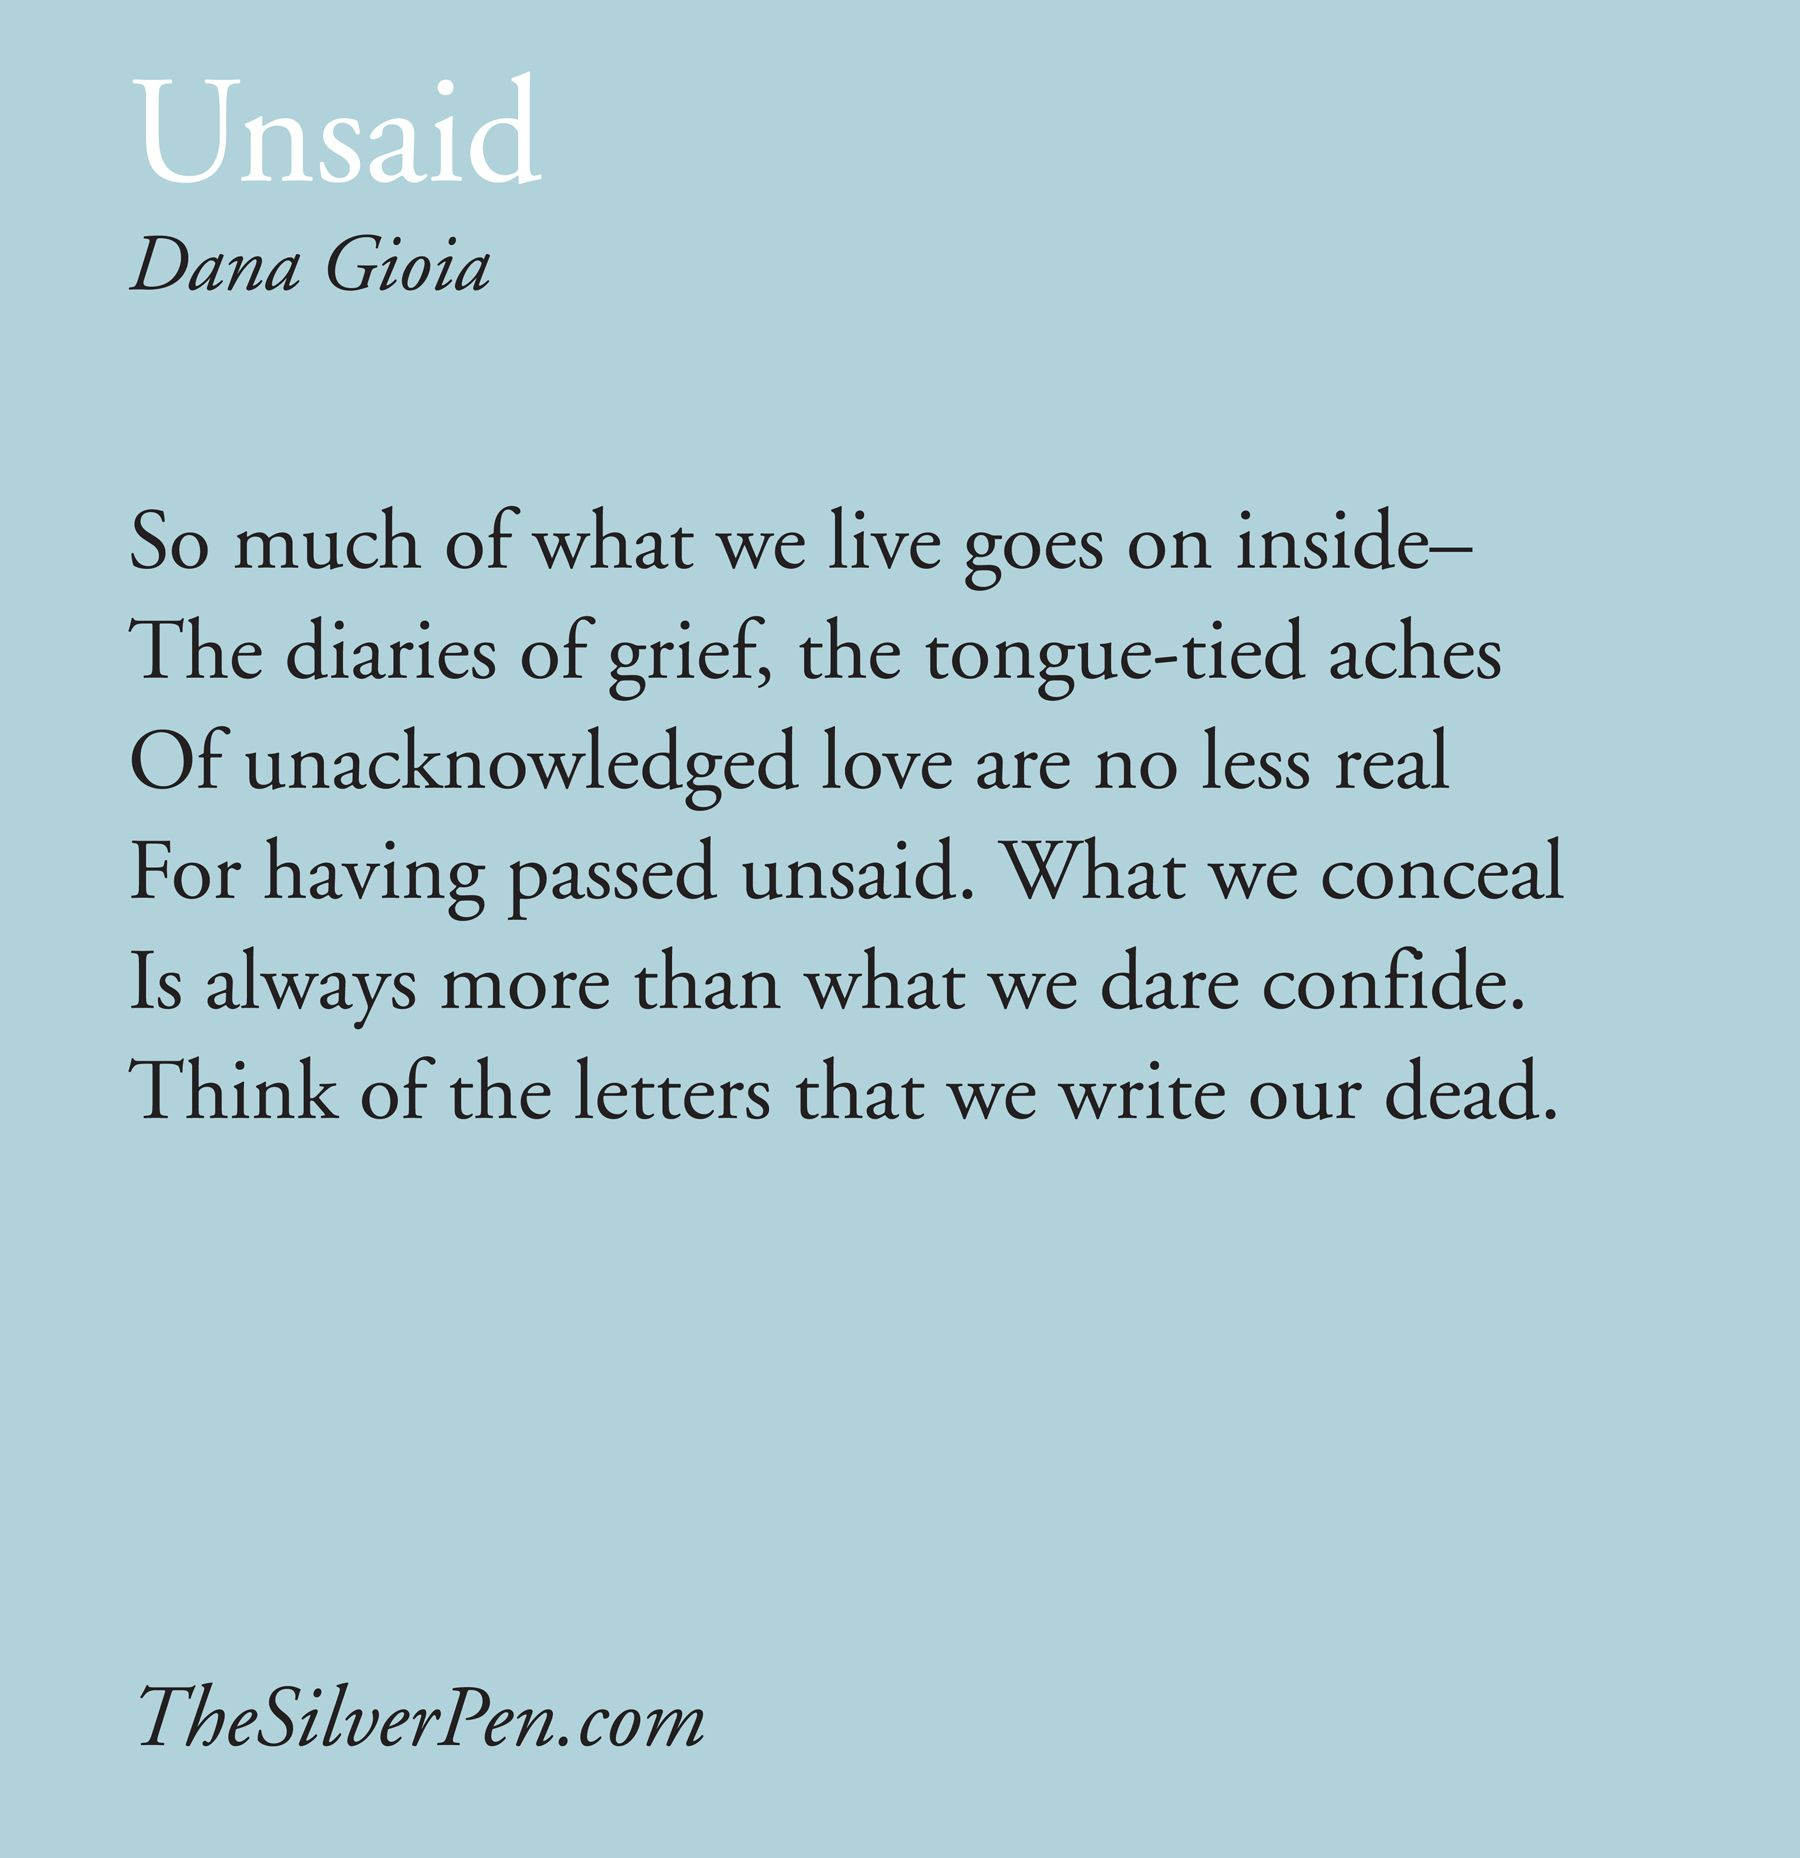 An analysis of dana gioias poem unsaid